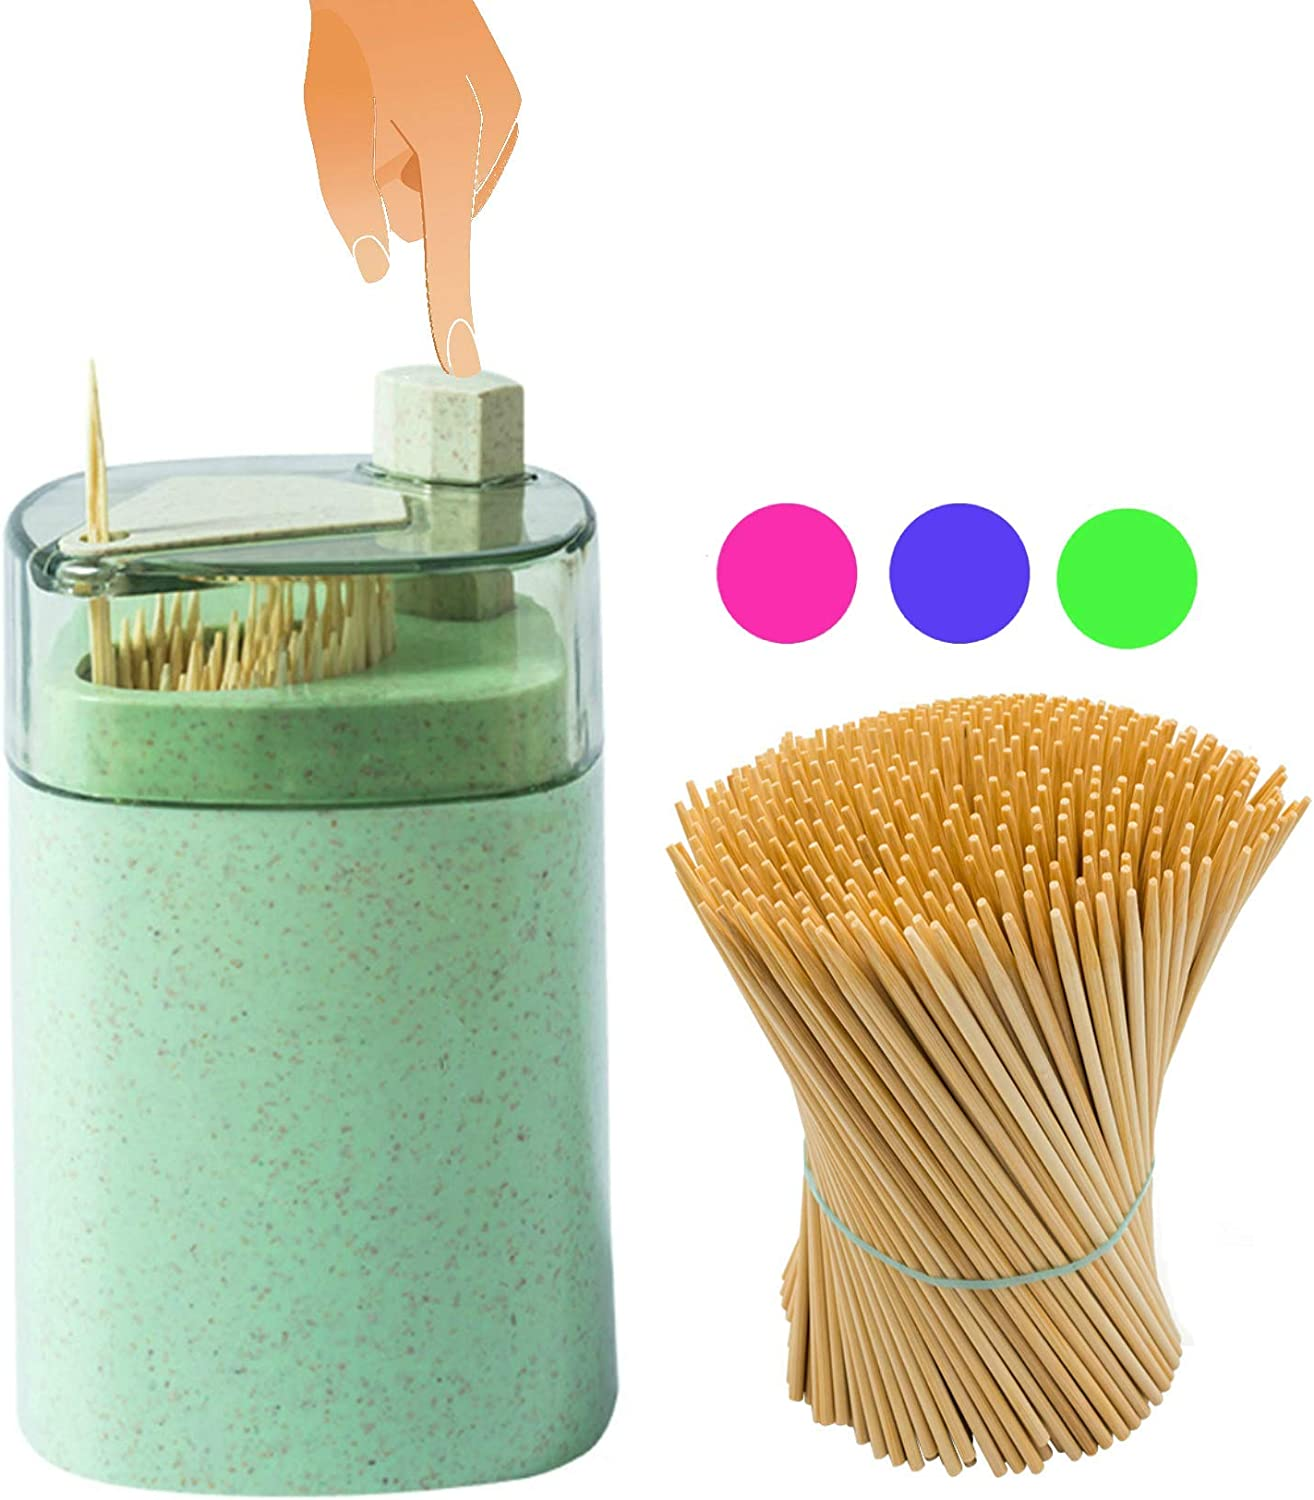 Toothpick Holder Dispenser Automatic Toothpicks Pak Designed In Us Small Spacious Green Kitchen Dining